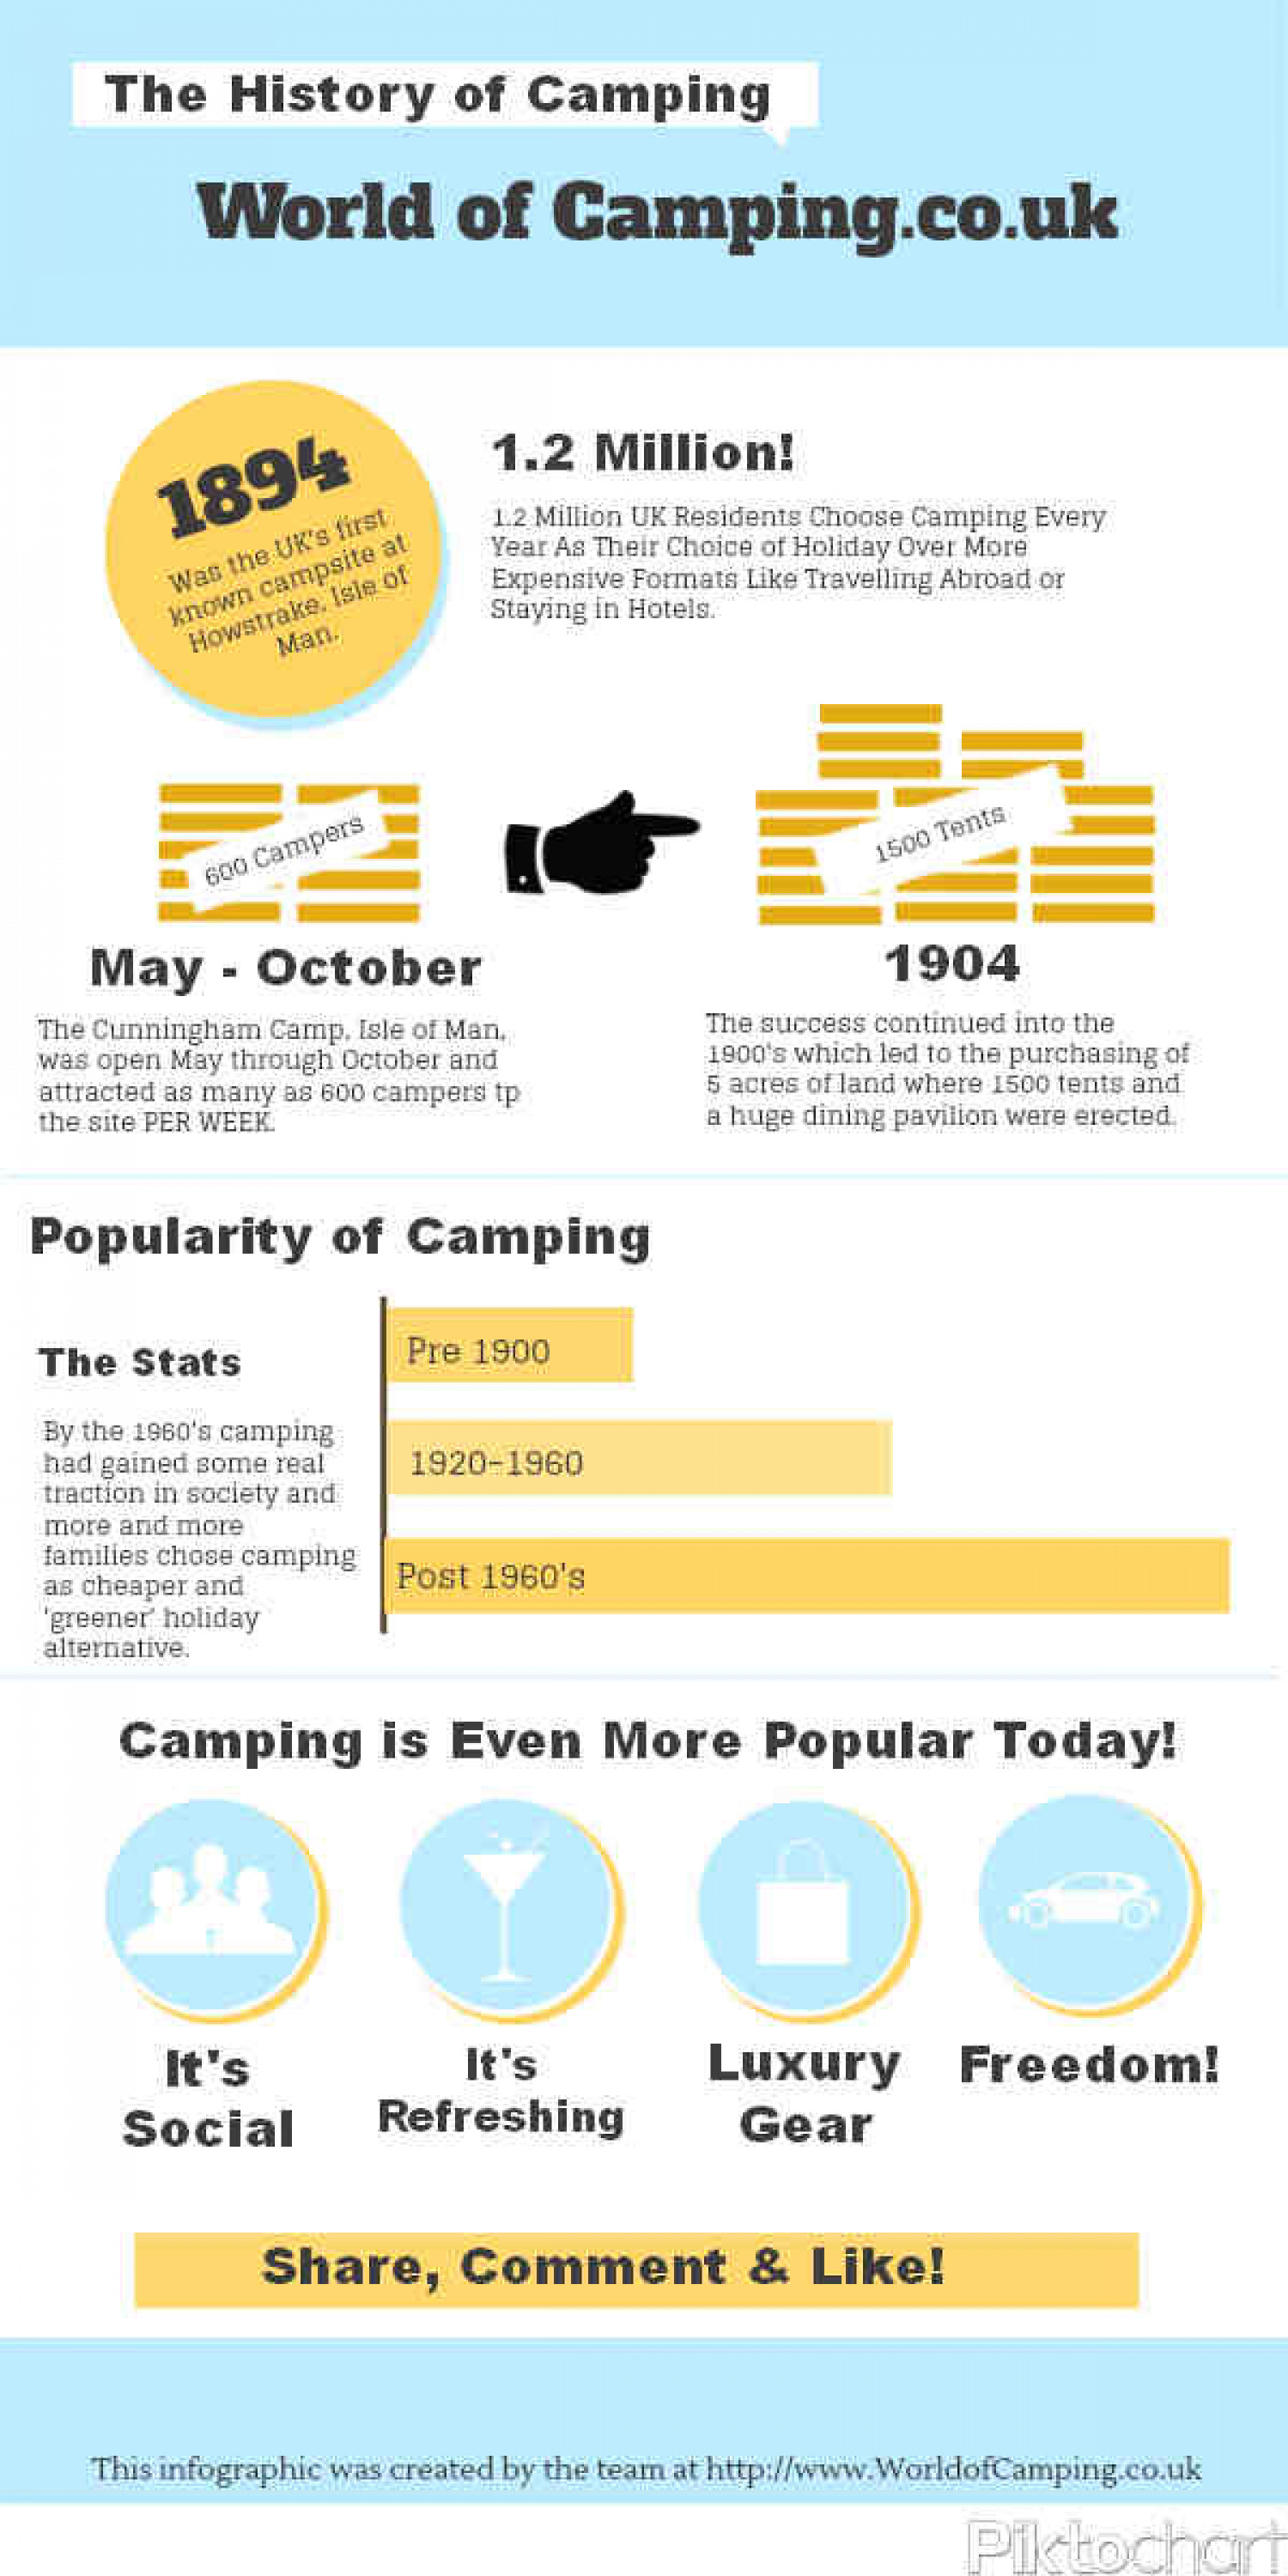 The History of Camping Infographic